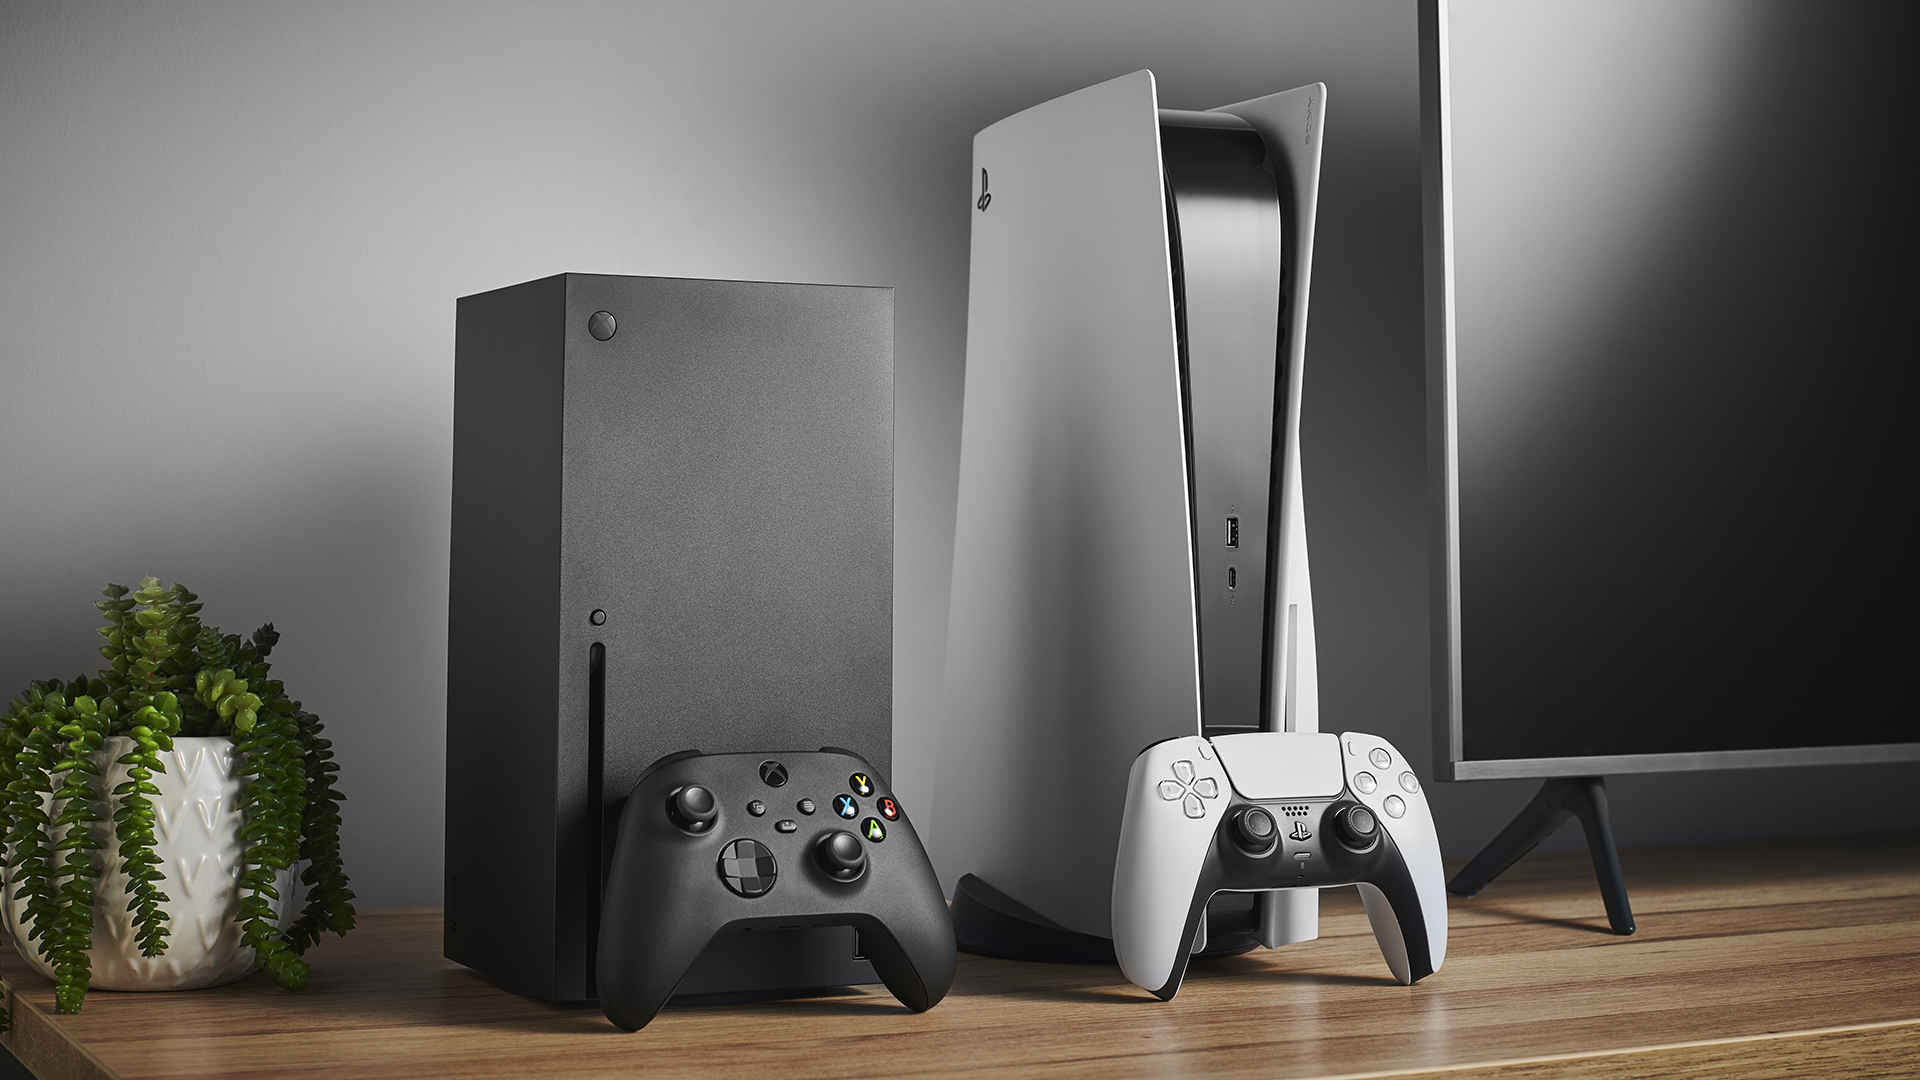 PS5 vs Xbox Series X: which is better? | What Hi-Fi?